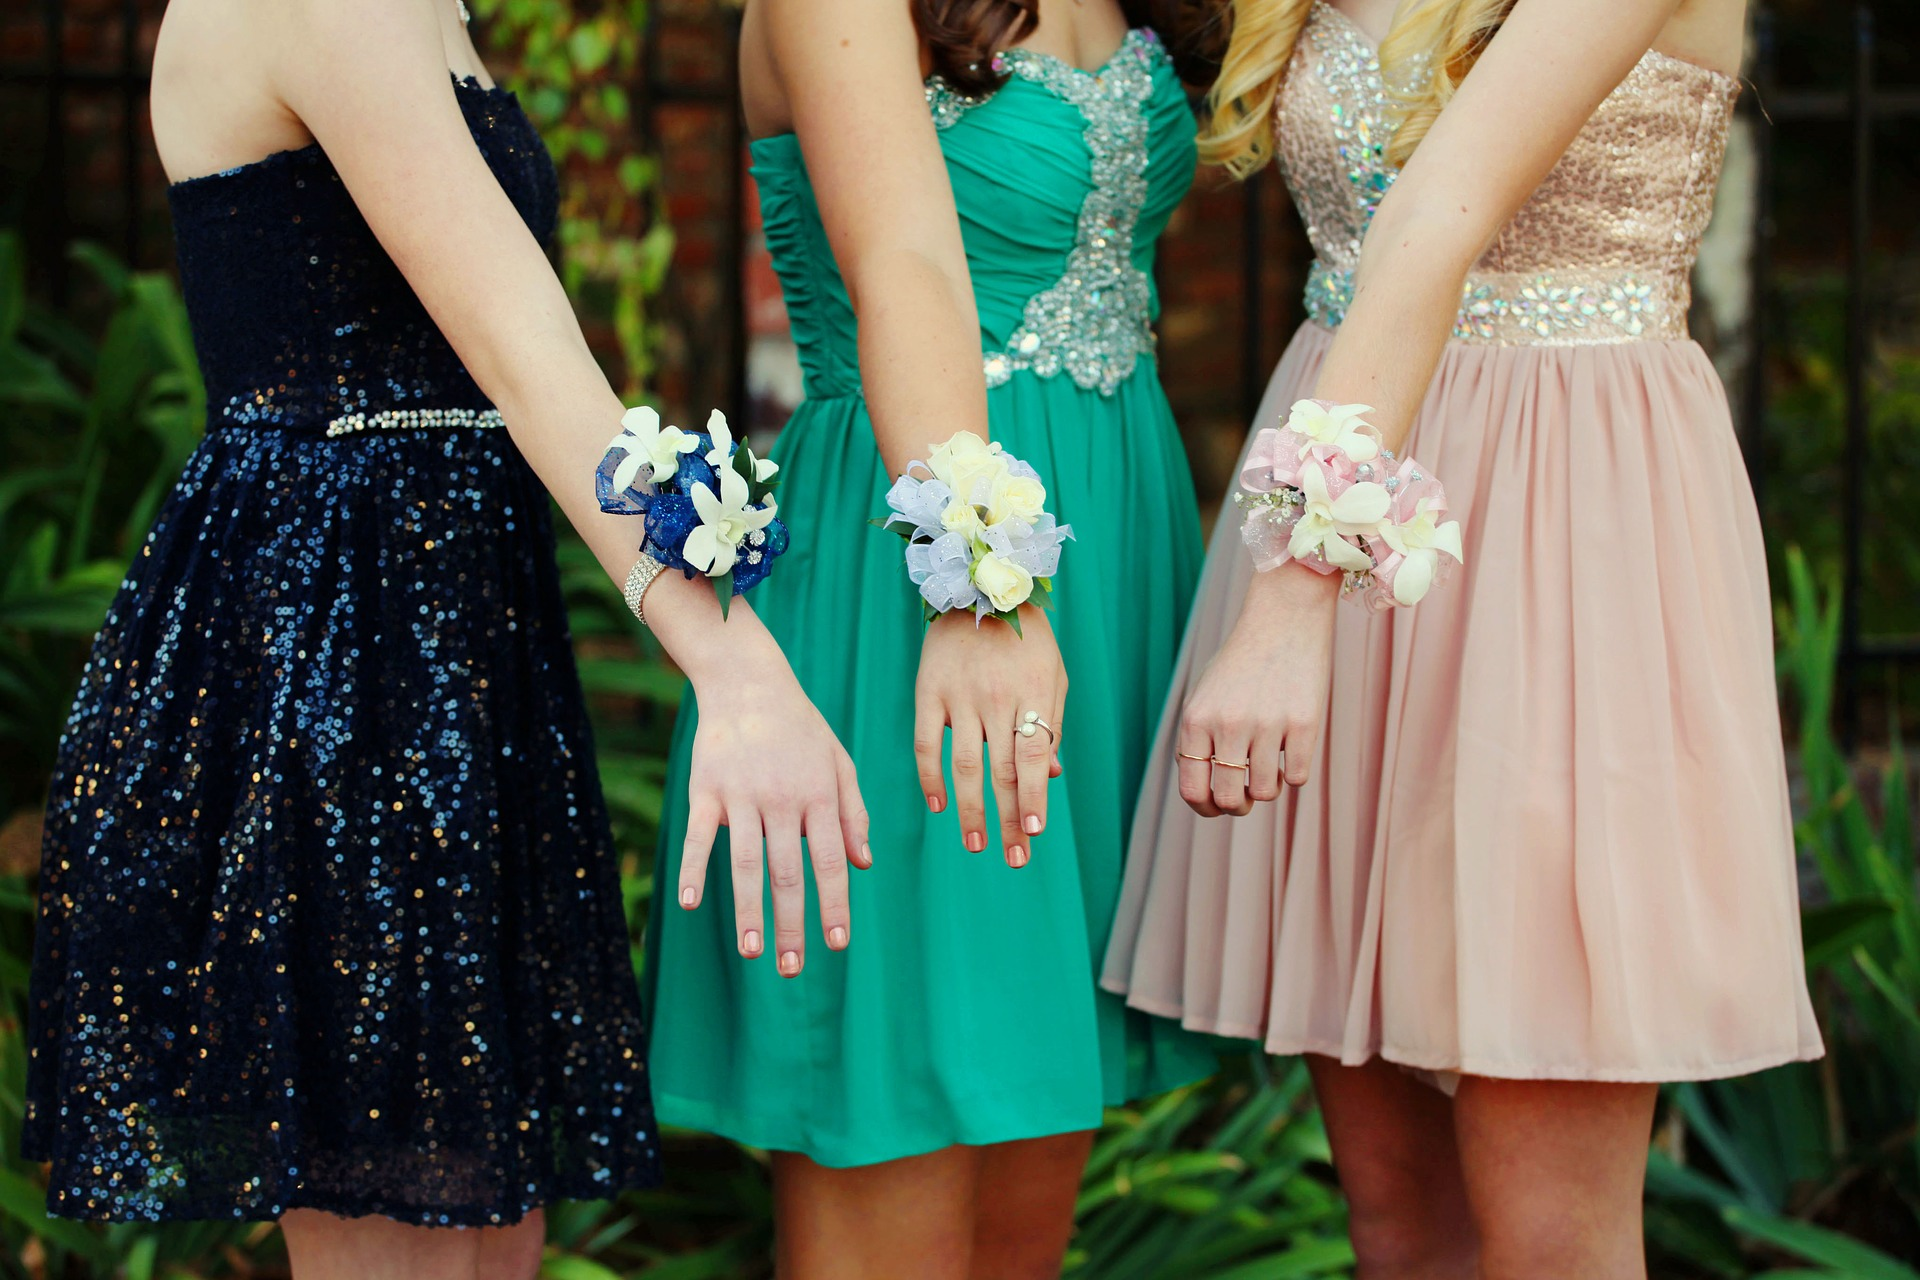 How To Shop For A Good Prom Dress In 3 Steps